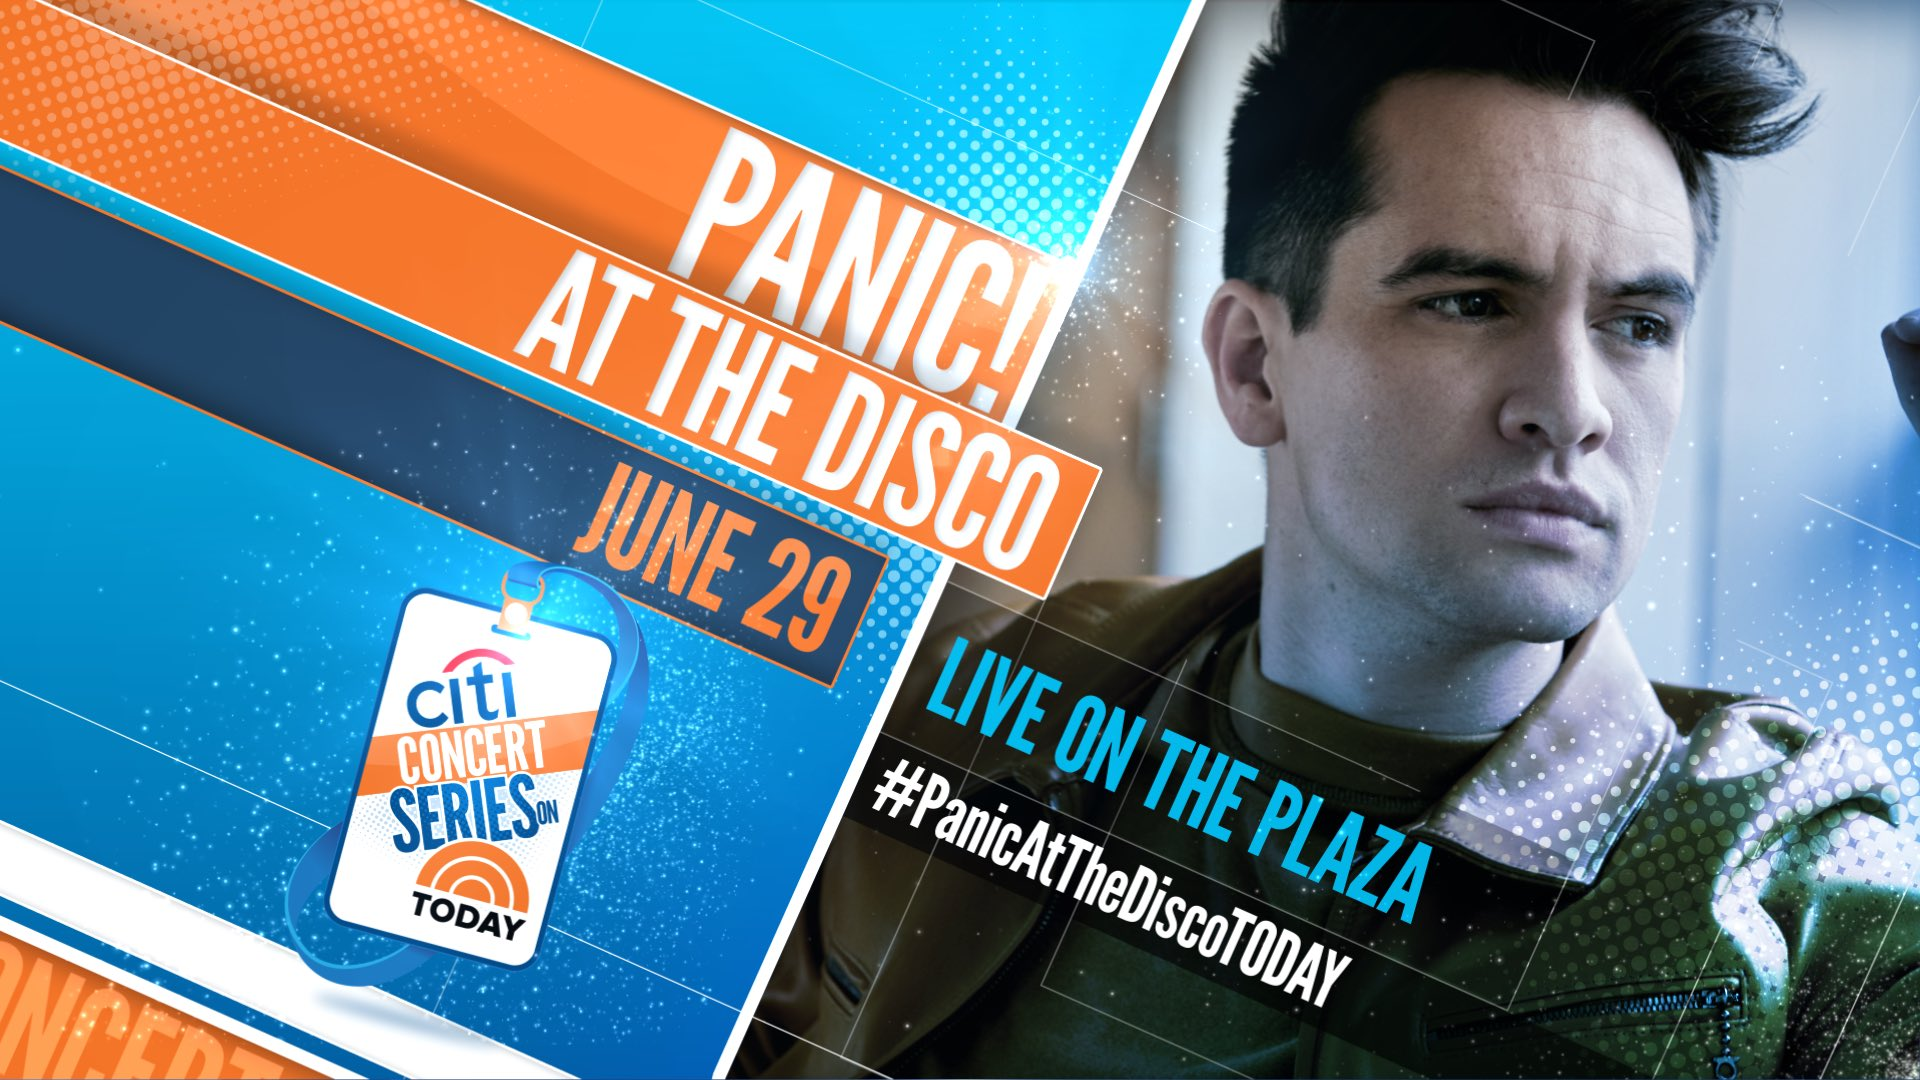 �� see you in the Plaza on June 29th for the @TODAYShow Summer Citi Concert Series! #PanicAtTheDiscoTODAY https://t.co/tBdirOAAk8